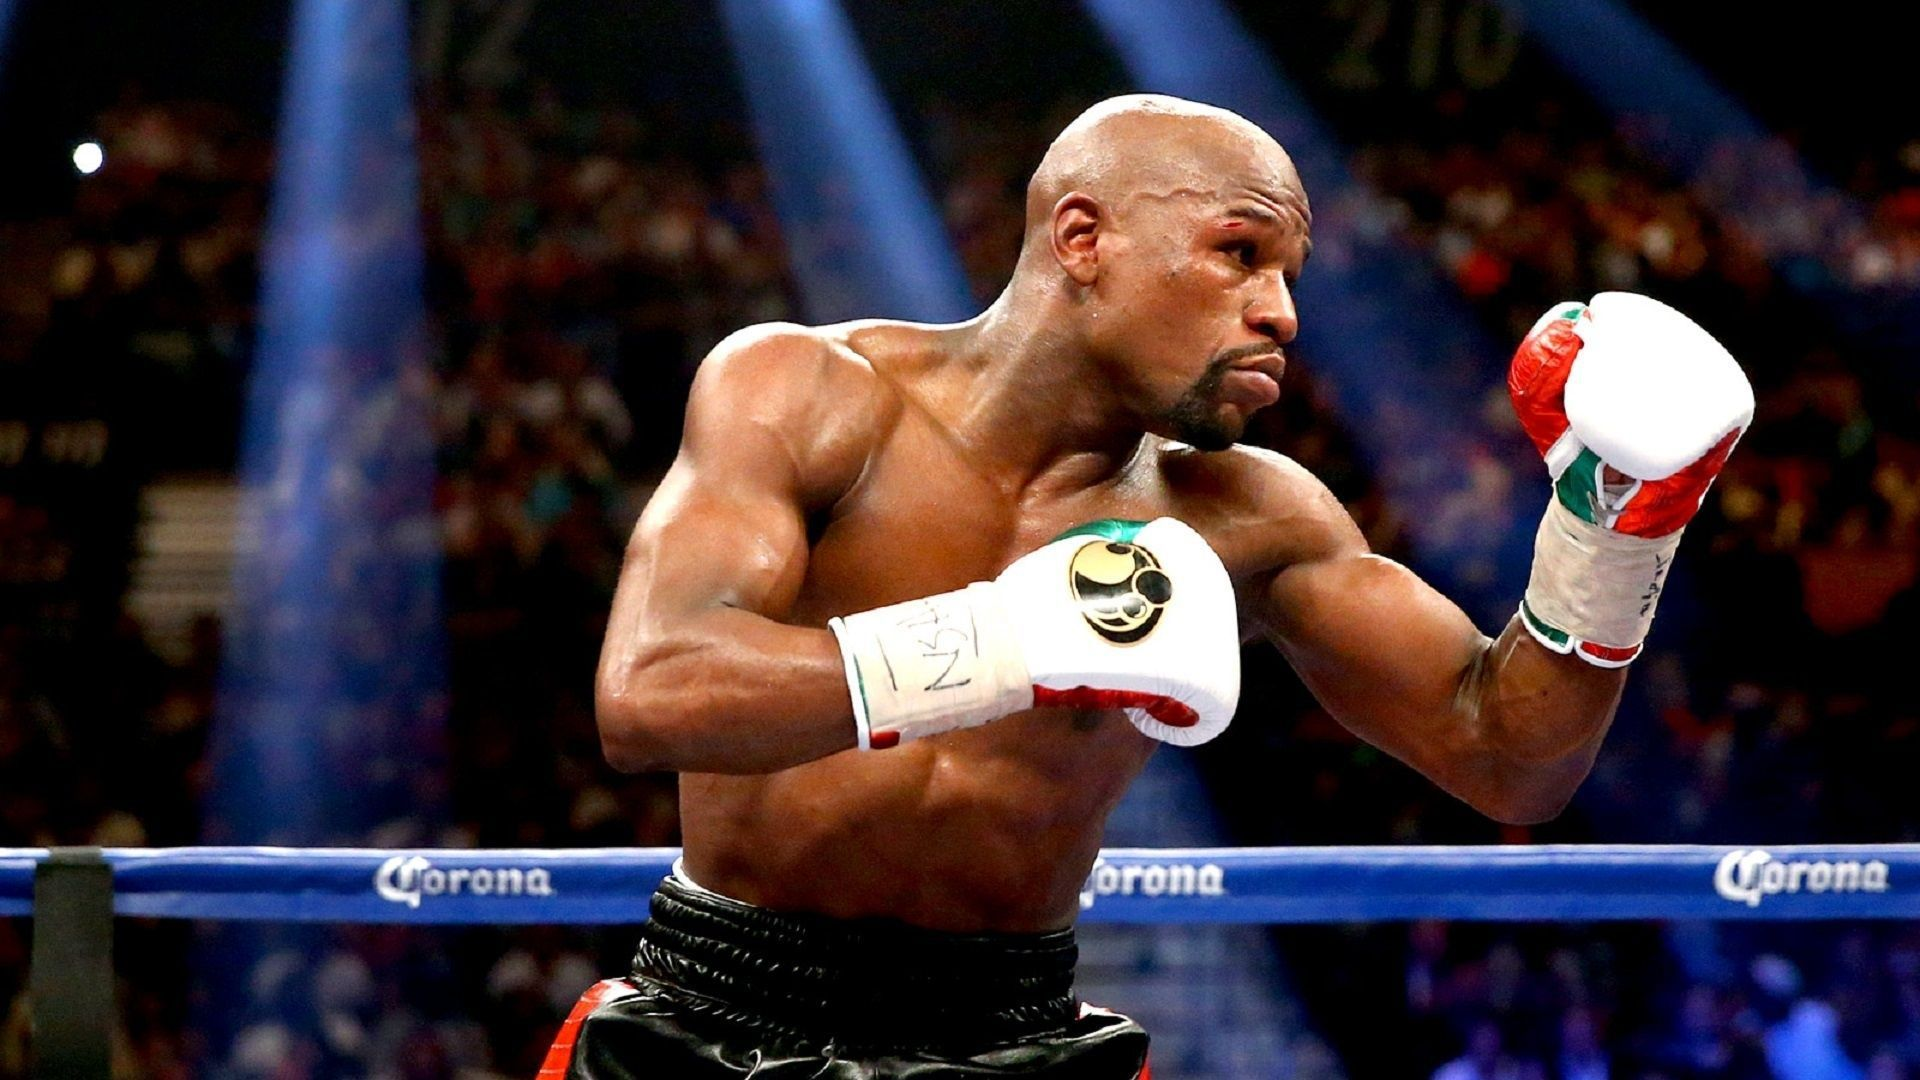 Floyd Mayweather Jr Wallpapers Images Photos Pictures Backgrounds 1920x1080